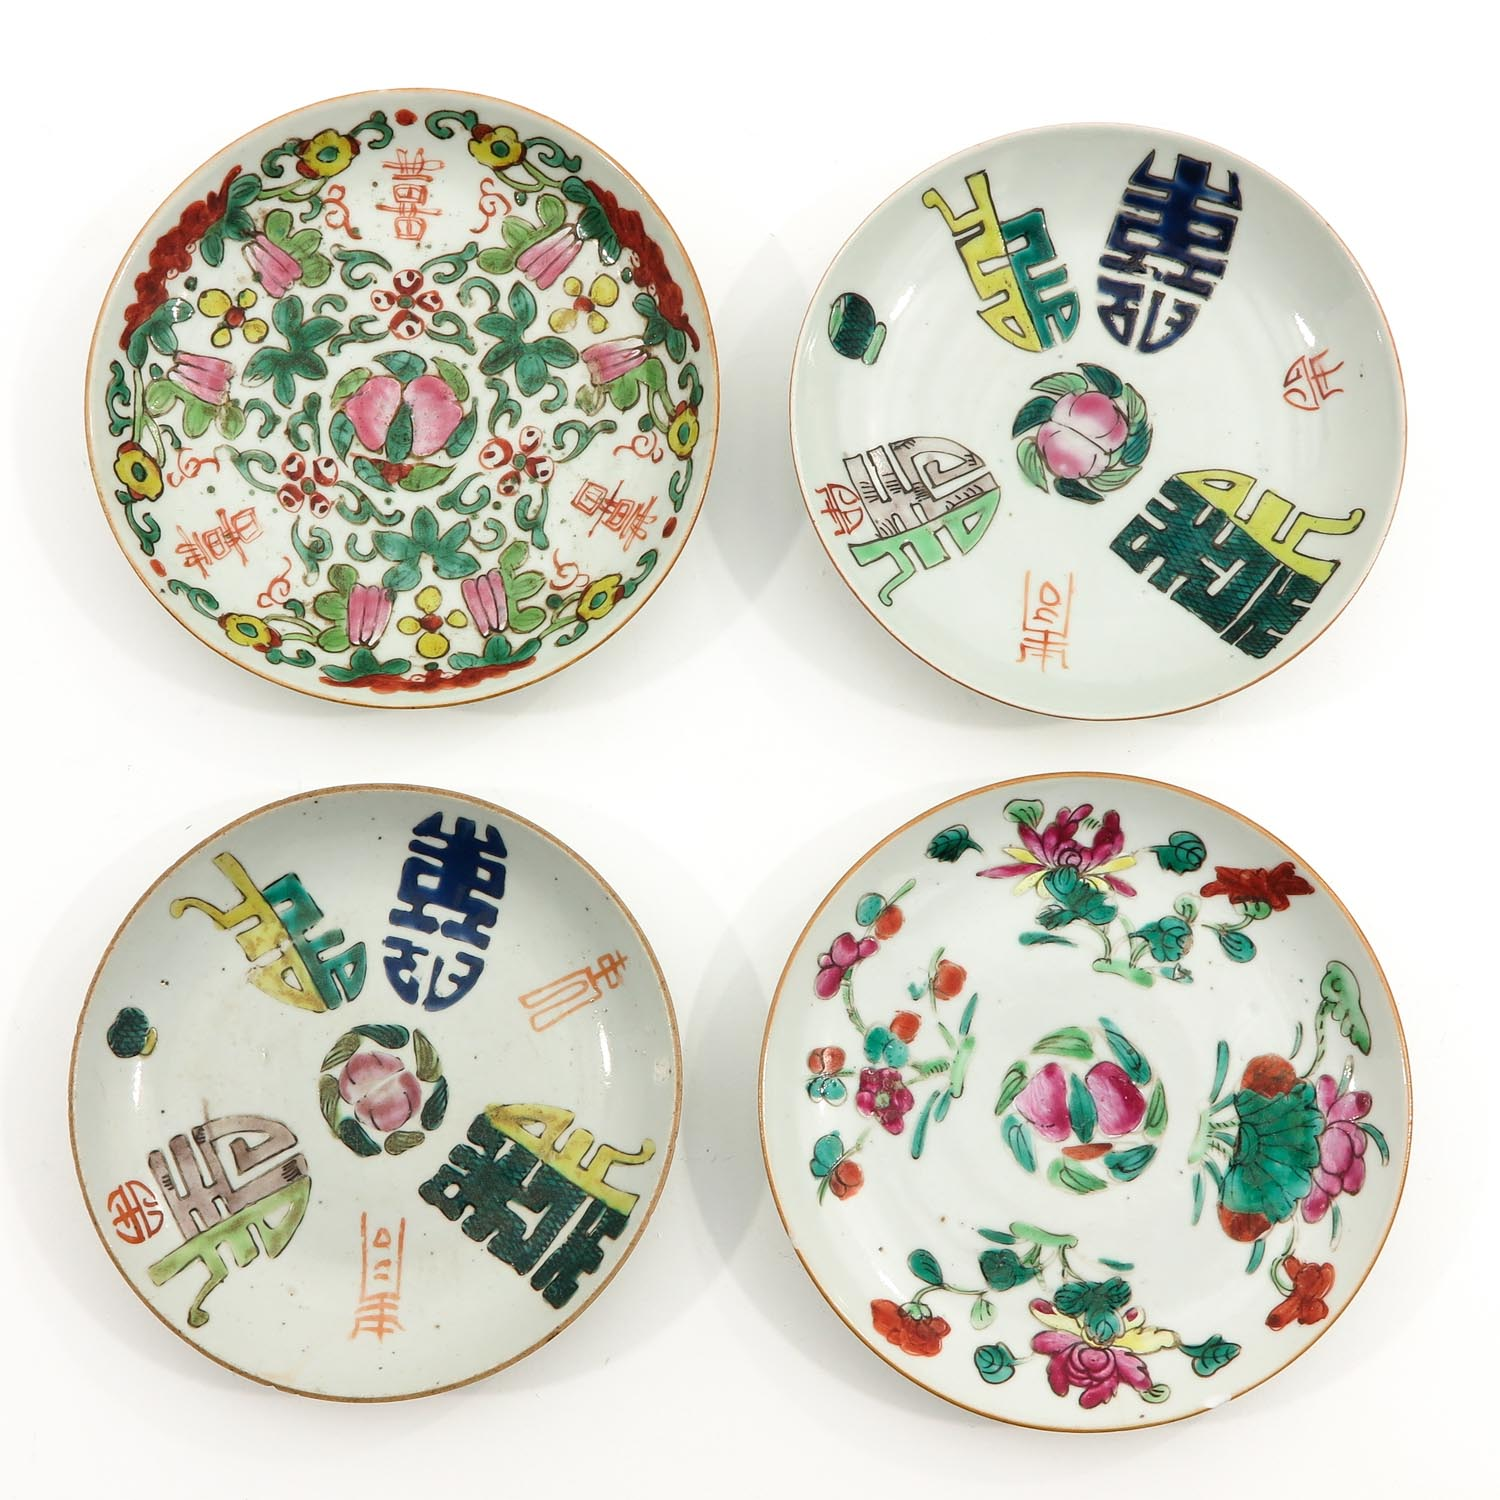 A Collection of 10 Polychrome Decor Plates - Image 3 of 10